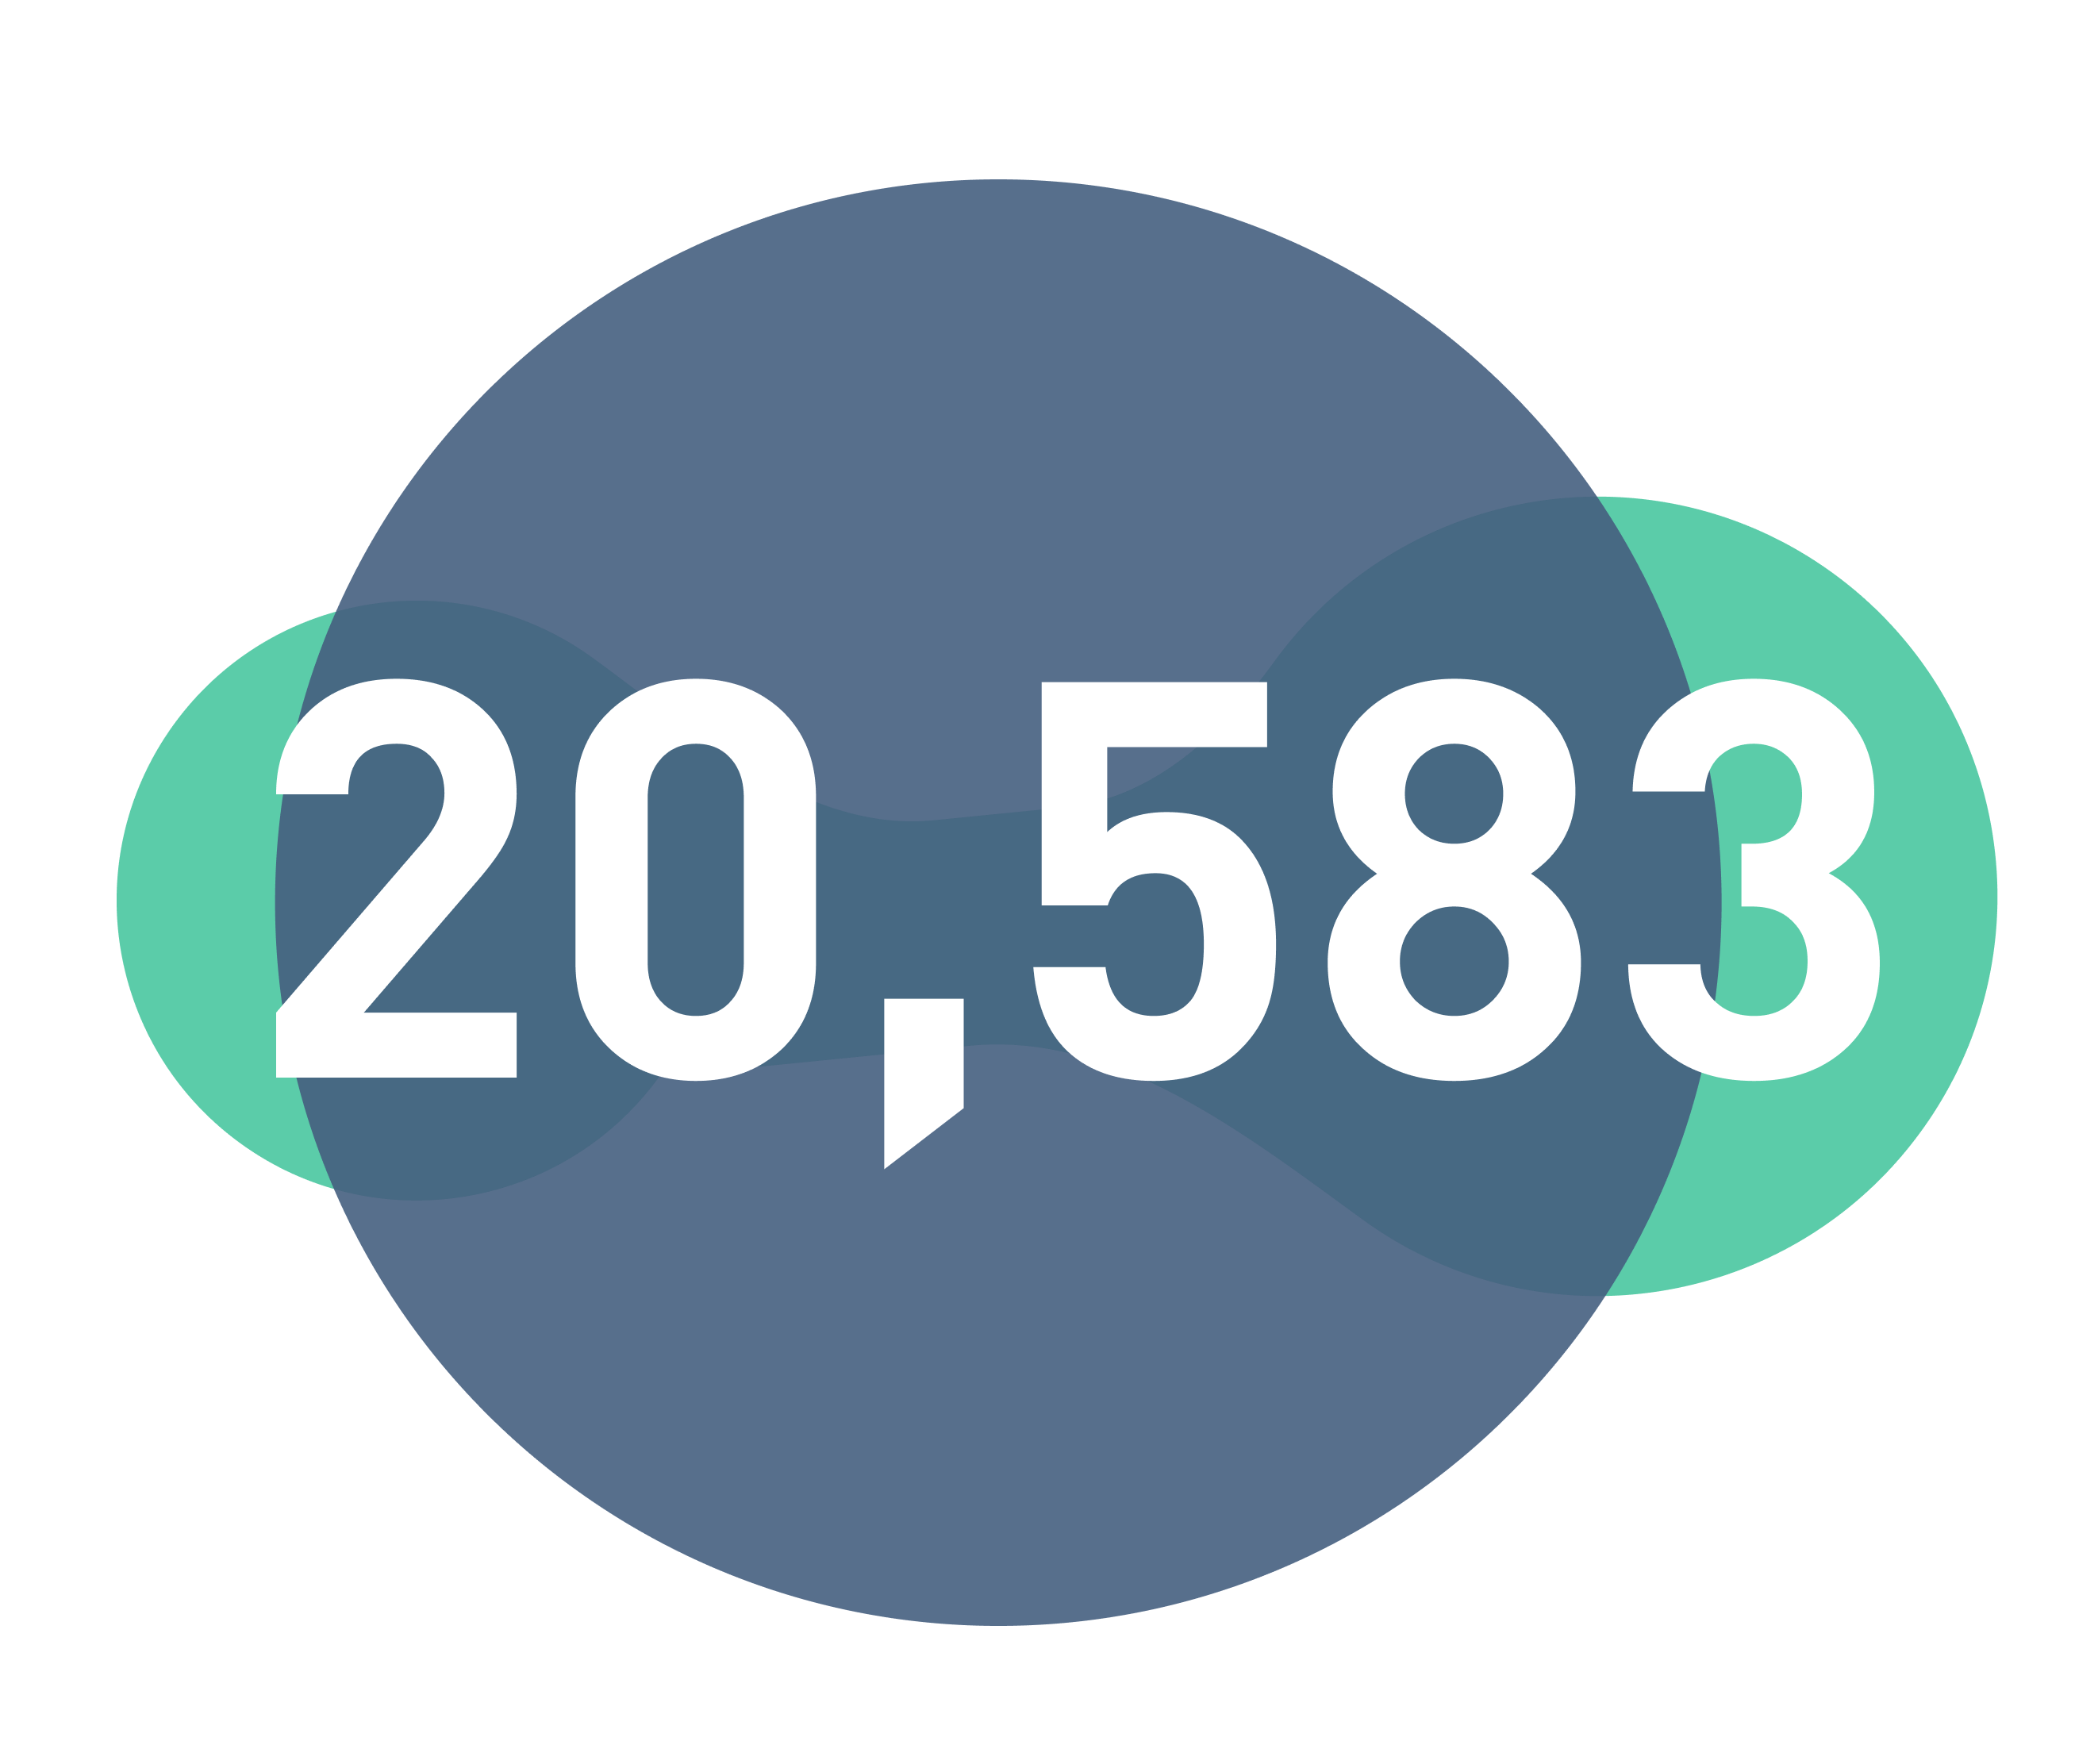 Our leading merchant database boasts 20,583 unique Hong Kong merchants and counting